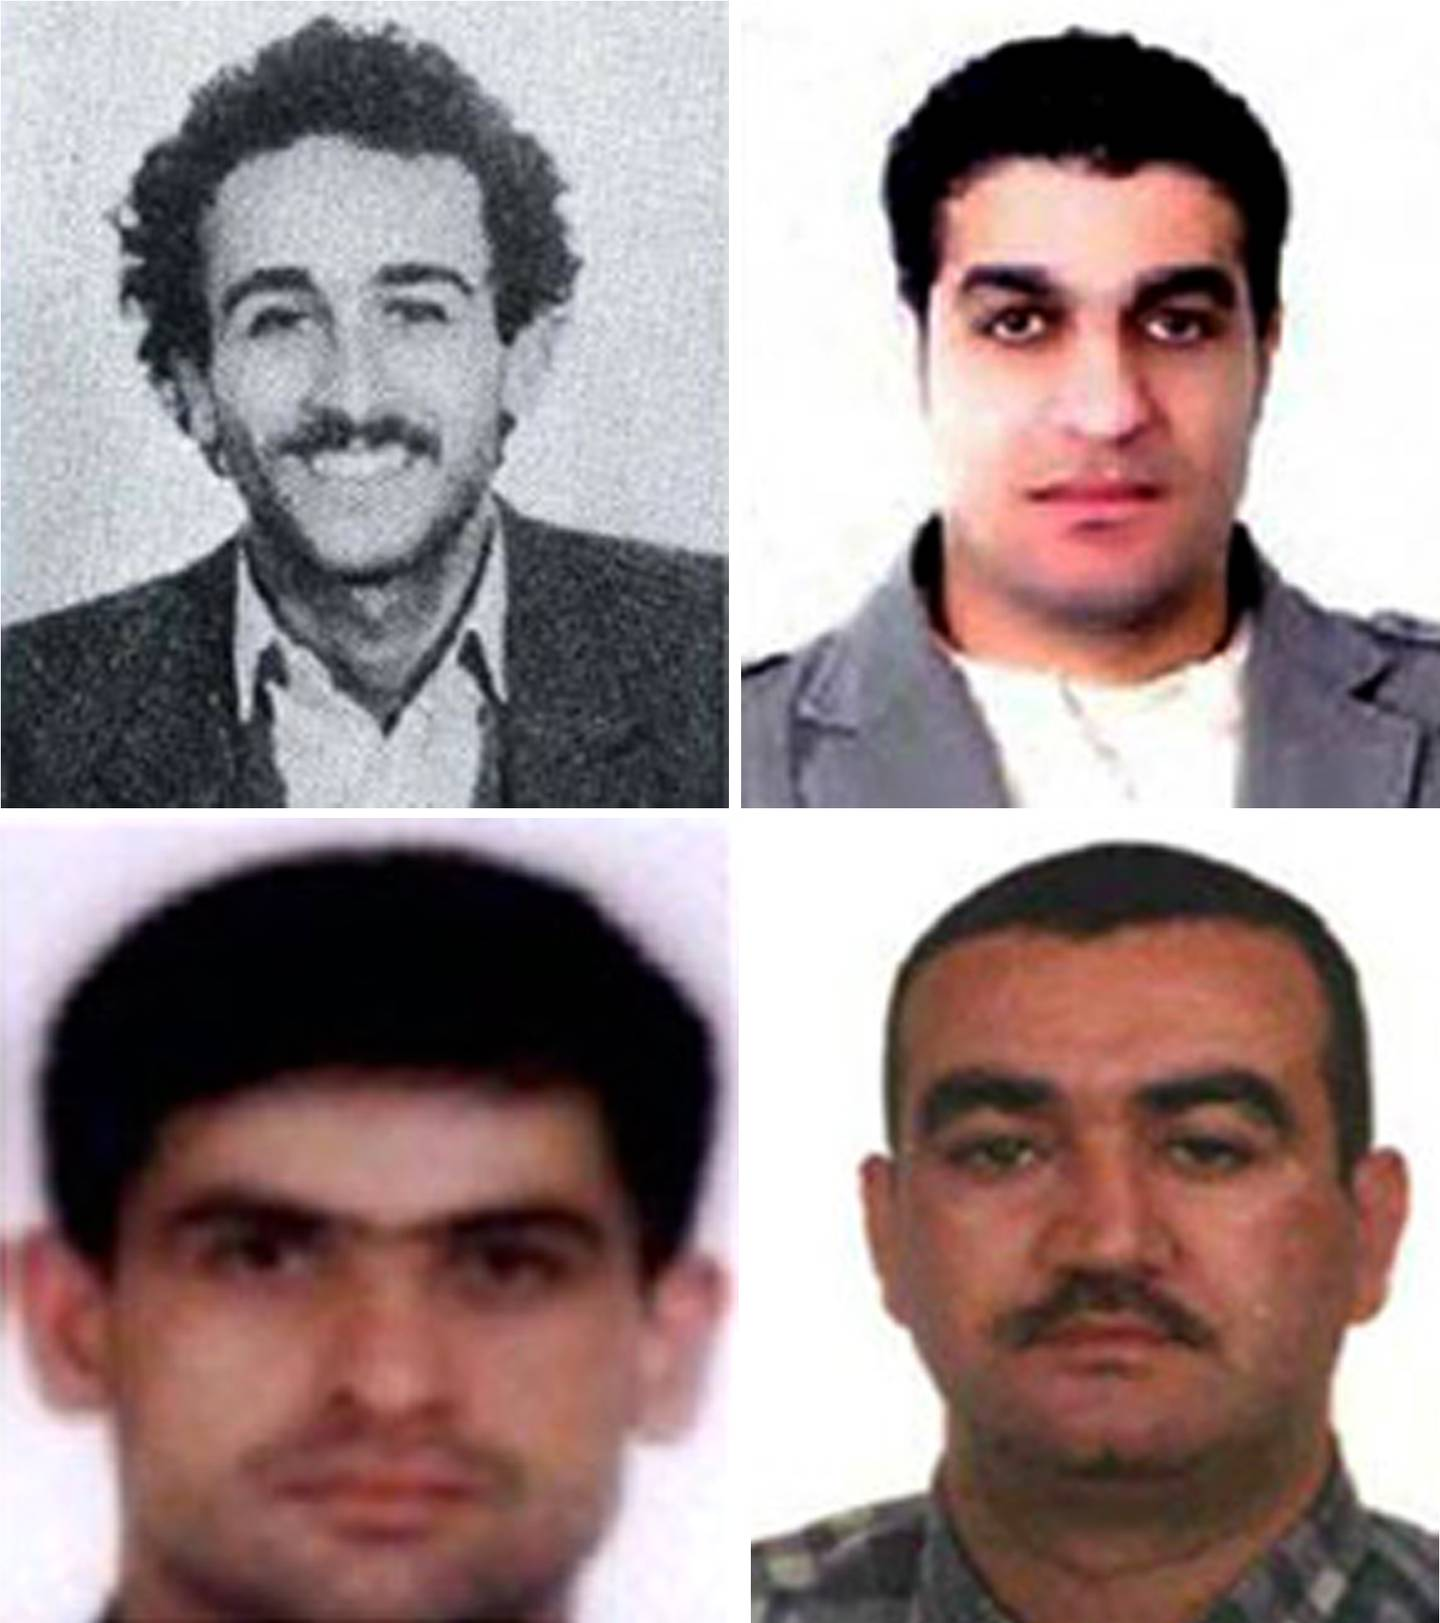 """(FILES) In this file photo obtained on July 29, 2011 from the Special Tribunal for Lebanon shows a combo of pictures showing four Hezbollah suspects indicted in the assassination case of former Lebanese prime minister Rafiq Hariri, (from top L-R) Mustafa Amine Badreddine, Assad Hassan Sabra, Hussein Hassan Oneissi and Salim Jamil Ayyash.  A massive bomb tore through Hariri's armoured convoy as he drove home for lunch on Valentine's Day 2005, killing him and 21 other people including seven of his bodyguards, as well as wounding 226 others. A UN-backed court is to deliver its judgement on August 7, 2020, on four suspected Hezbollah members tried in absentia for former Lebanese premier Rafic Hariri's murder in a 2005 Beirut car bombing. / AFP / Special Tribunal for Lebanon / - / EDITOR'S NOTE ==== RESTRICTED TO EDITORIAL USE - MANDATORY CREDIT """"AFP PHOTO/ SPECIAL TRIBUNAL FOR LEBANON"""" - NO MARKETING NO ADVERTISING CAMPAIGNS - DISTRIBUTED AS A SERVICE TO CLIENTS ===="""